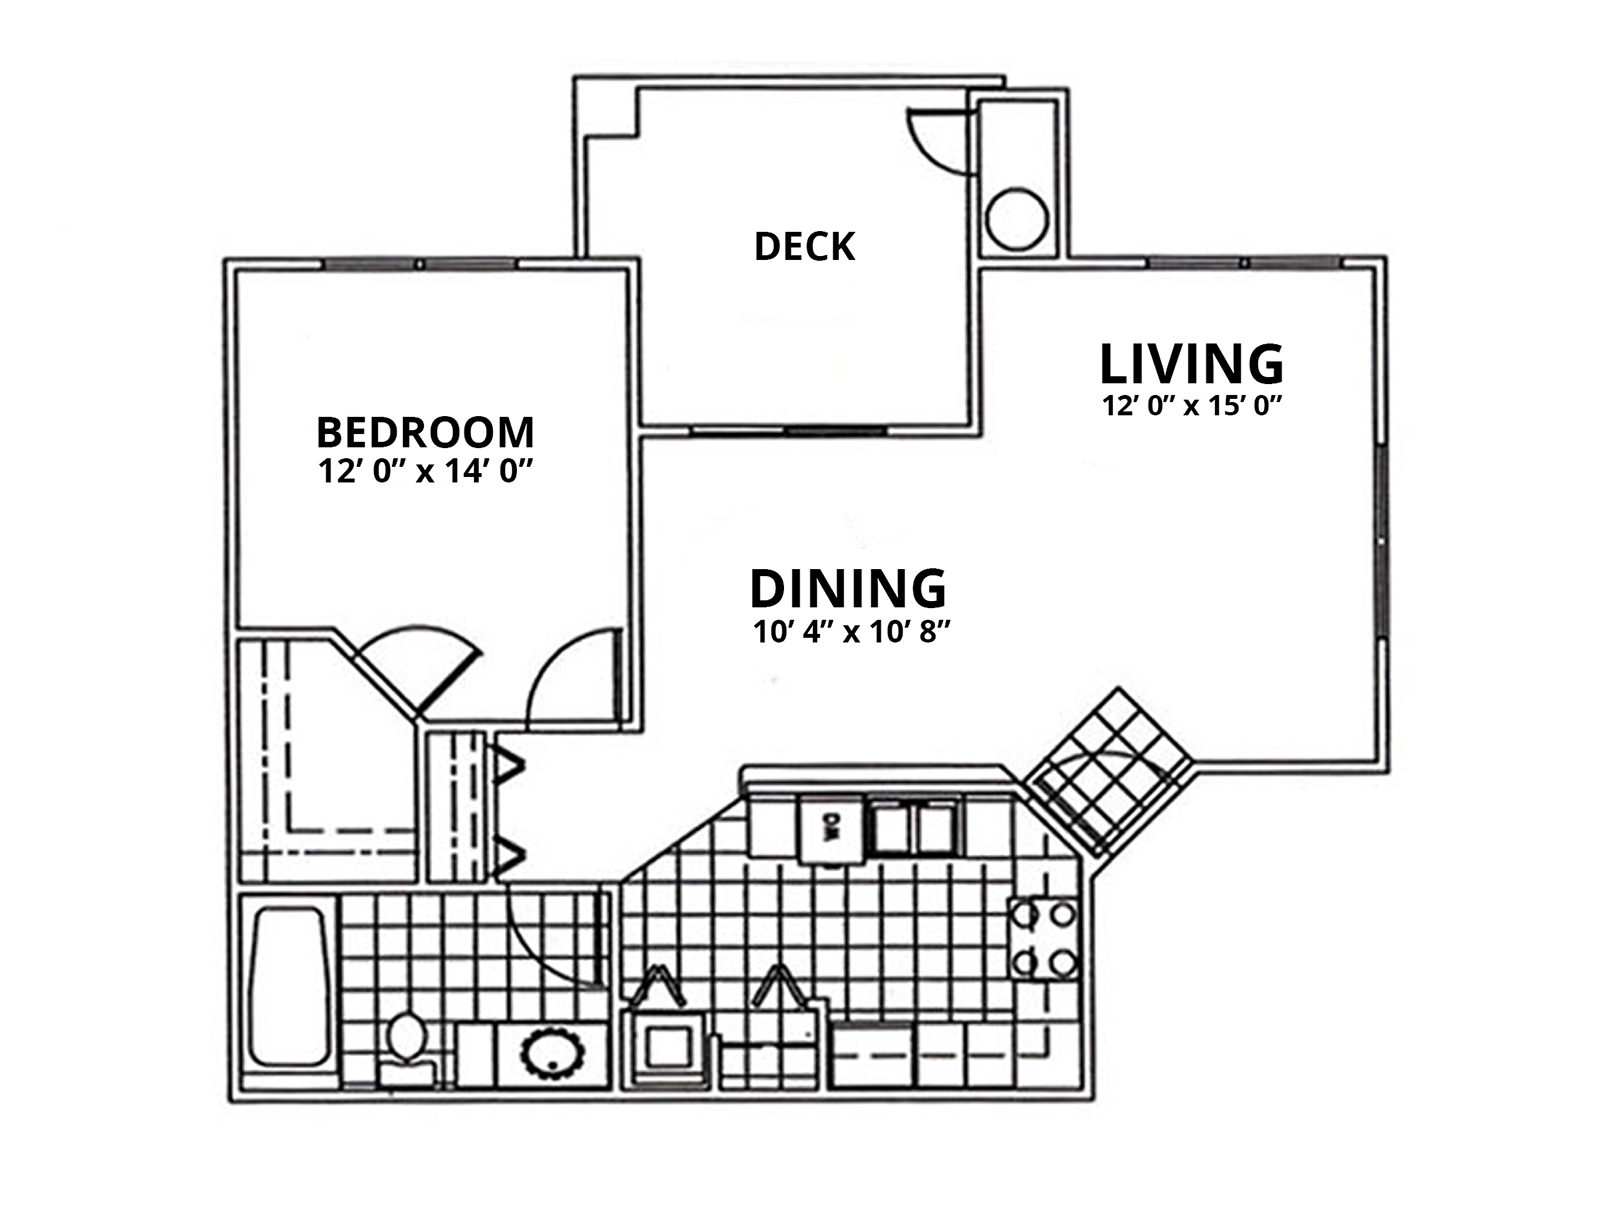 1 Bed; 1 Bathroom